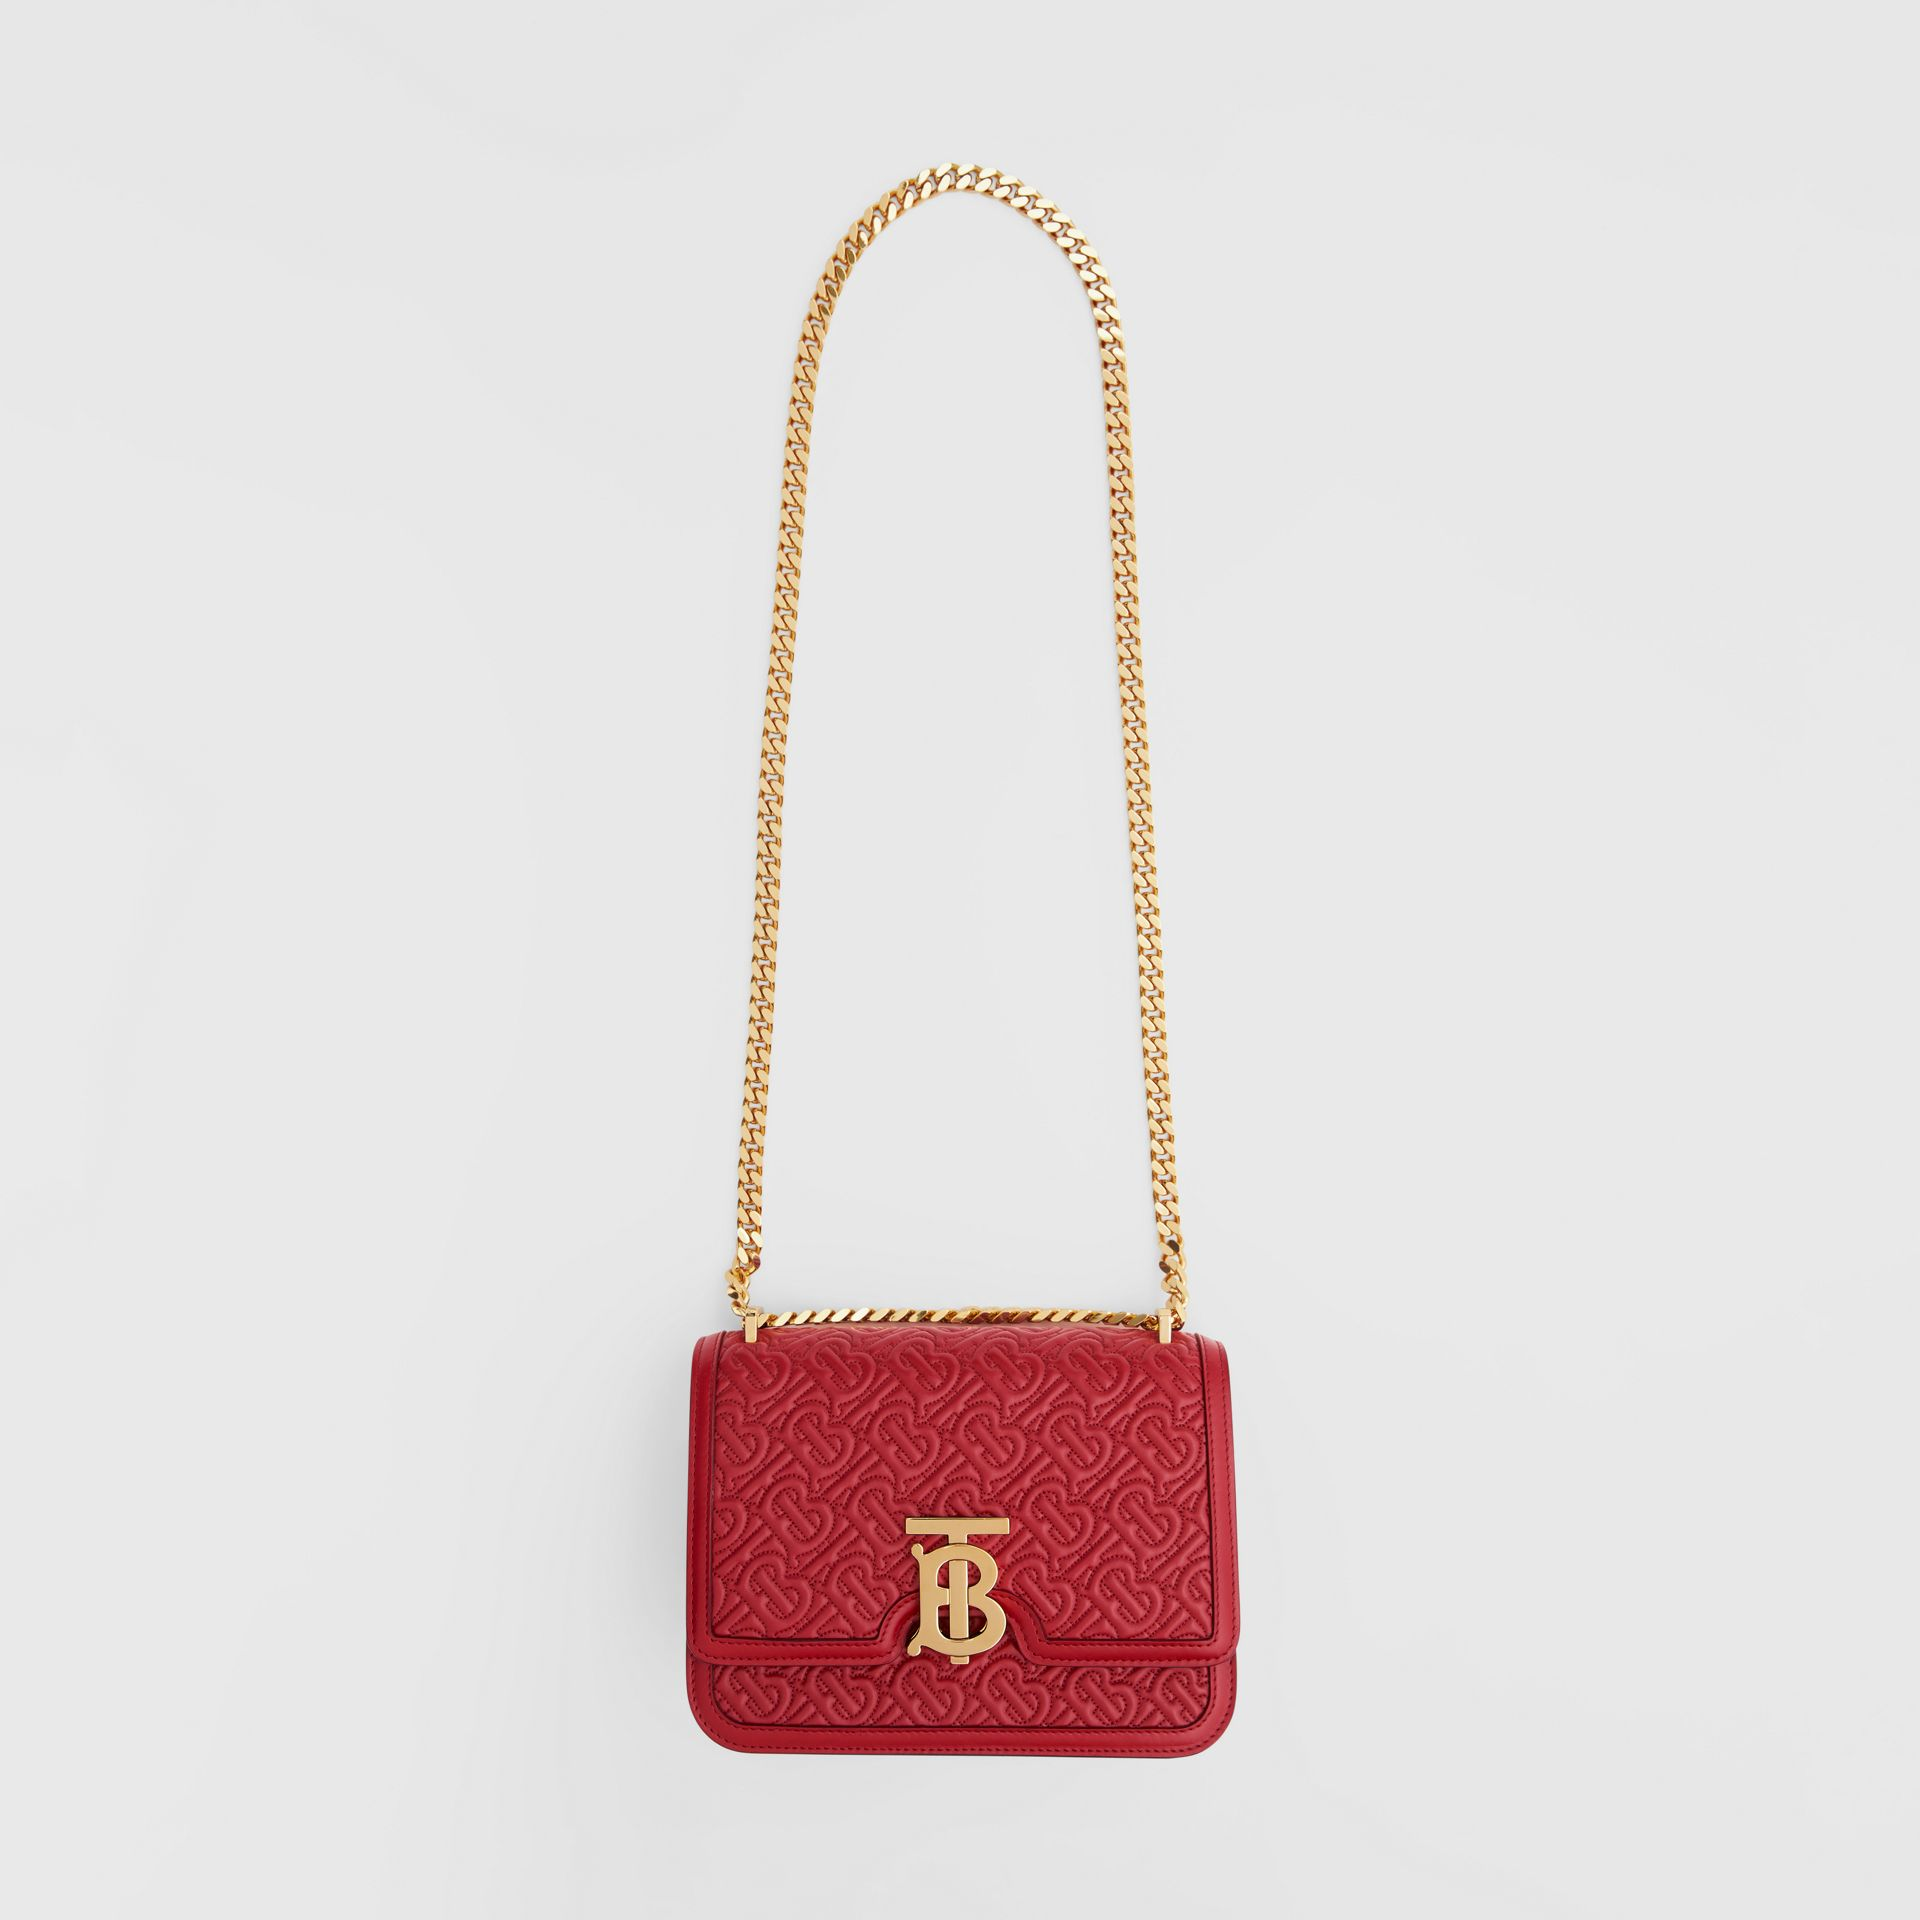 Small Quilted Monogram Lambskin TB Bag in Dark Carmine - Women | Burberry Hong Kong S.A.R. - gallery image 3